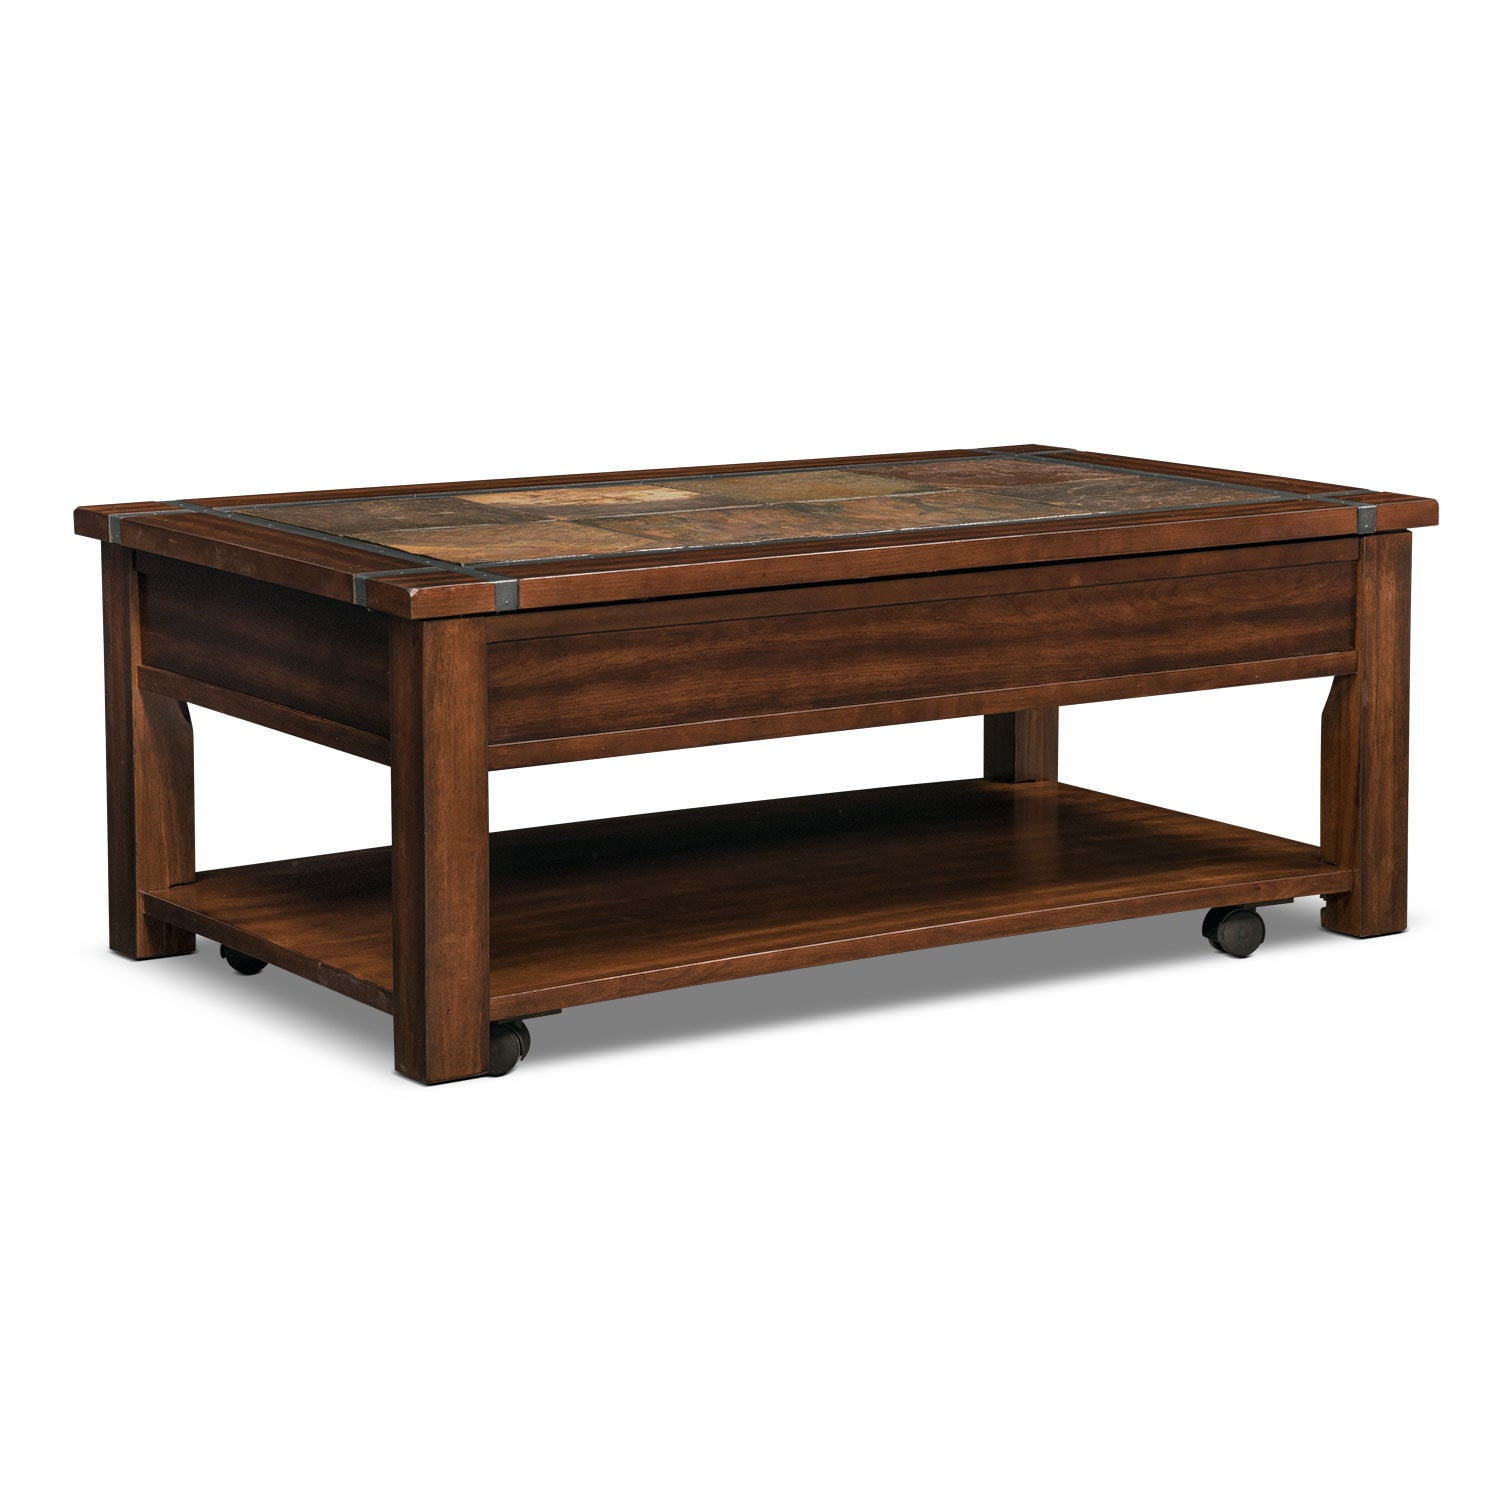 Slate Ridge Sofa Table Cherry Value City Furniture and Mattresses